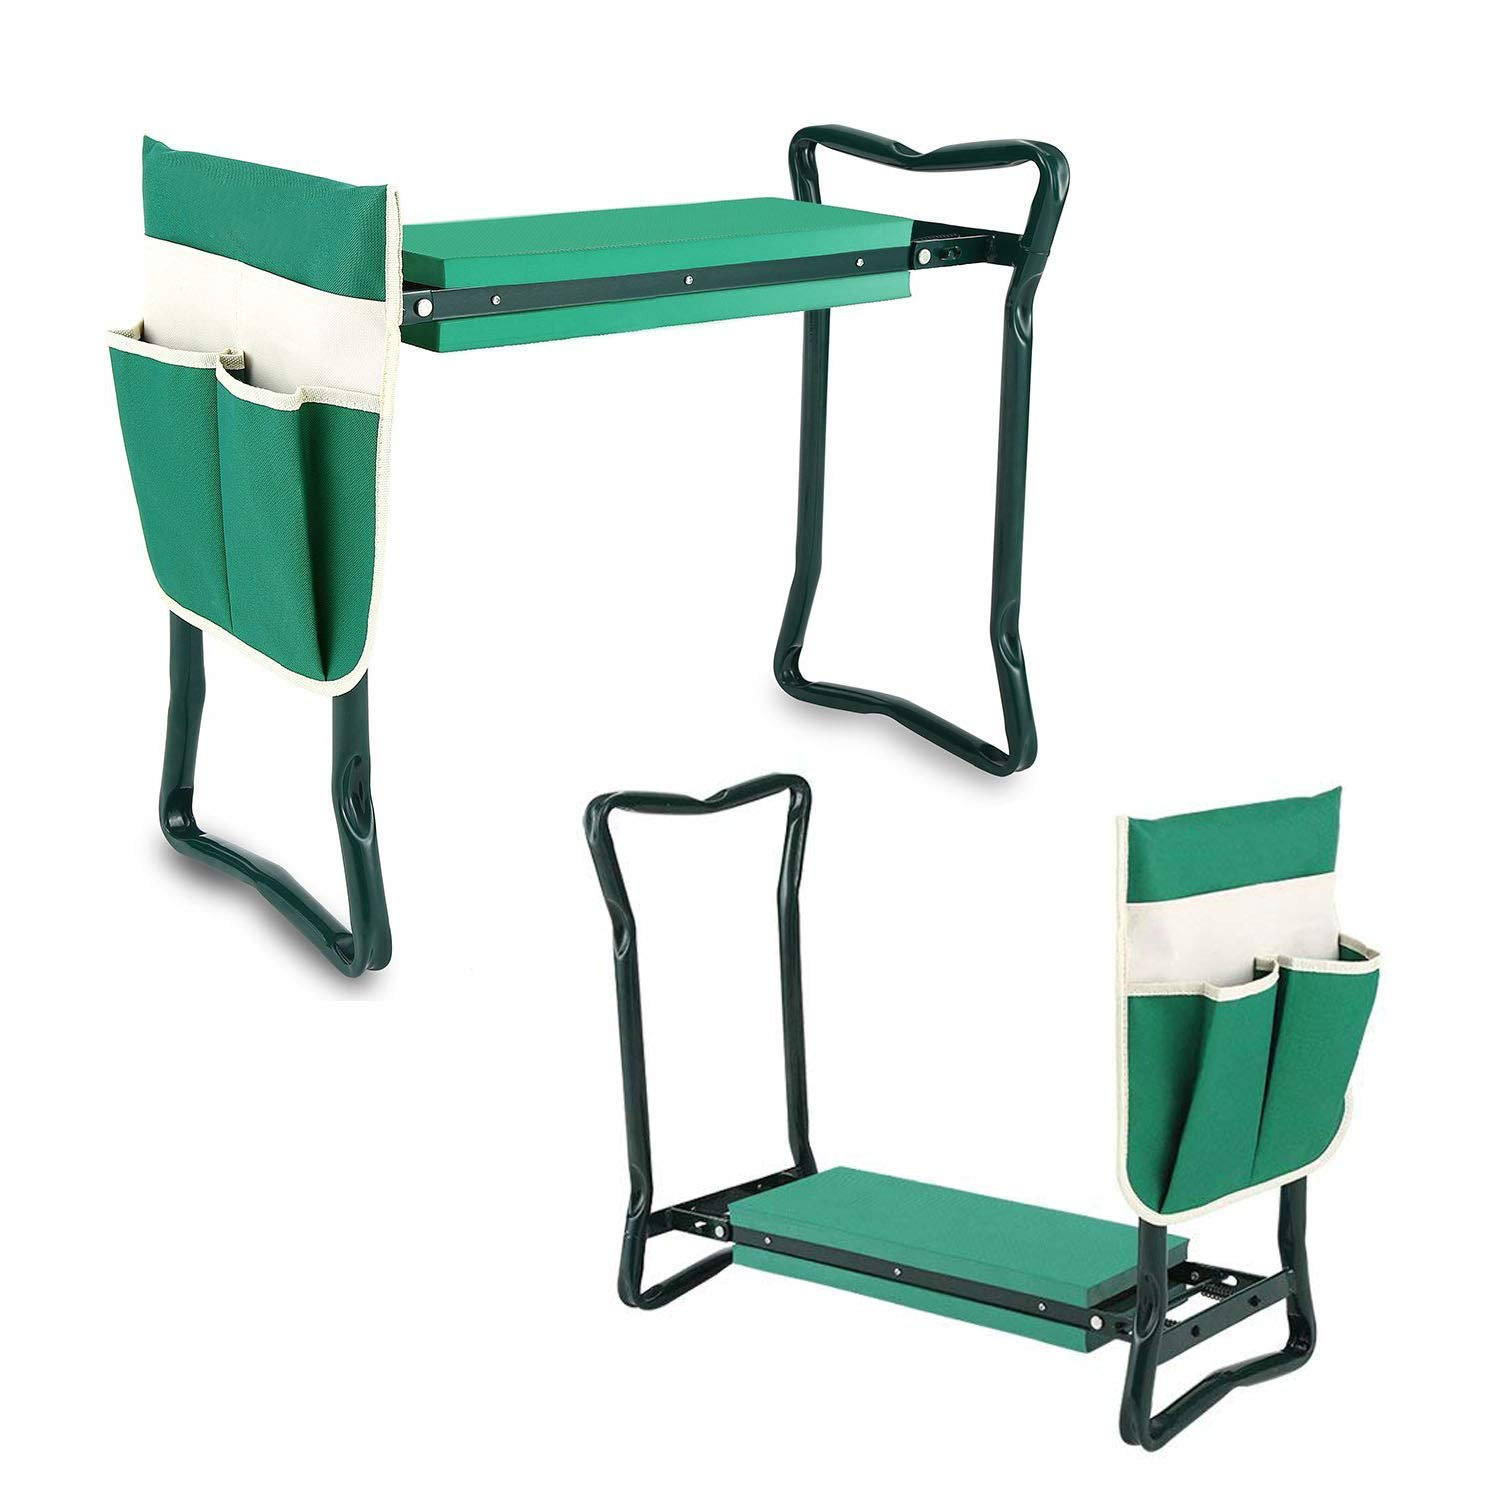 Fancy Buying Folding Garden Kneeler - Folding Bench Stool with Kneeling Pad for Gardening - Sturdy, Lightweight and Practical - Protect Your Knees and Clothes When Gardening - Gardening Gift by Fancy Buying